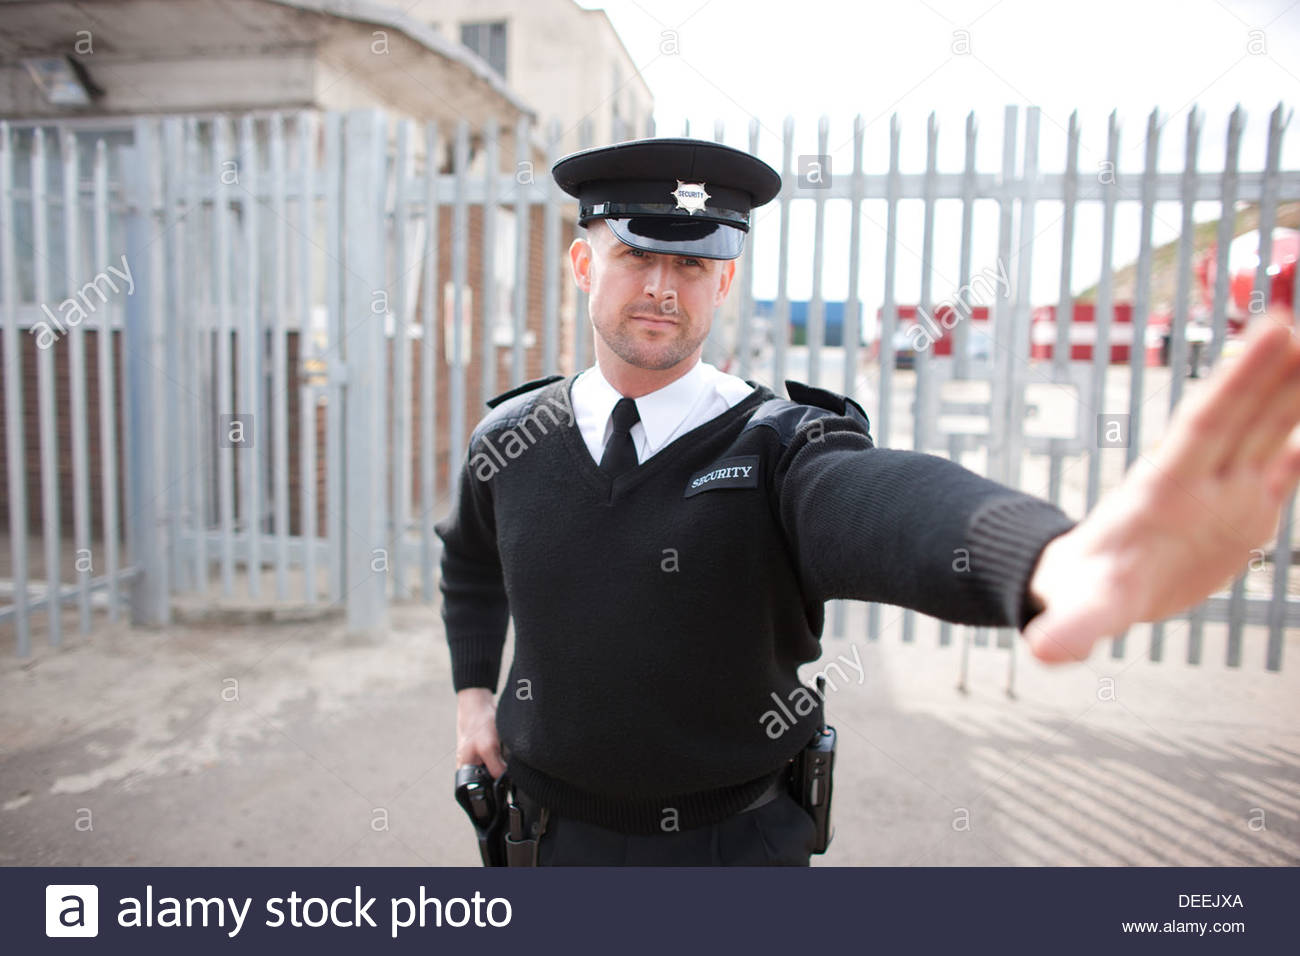 Security guard holding hand out - Stock Image